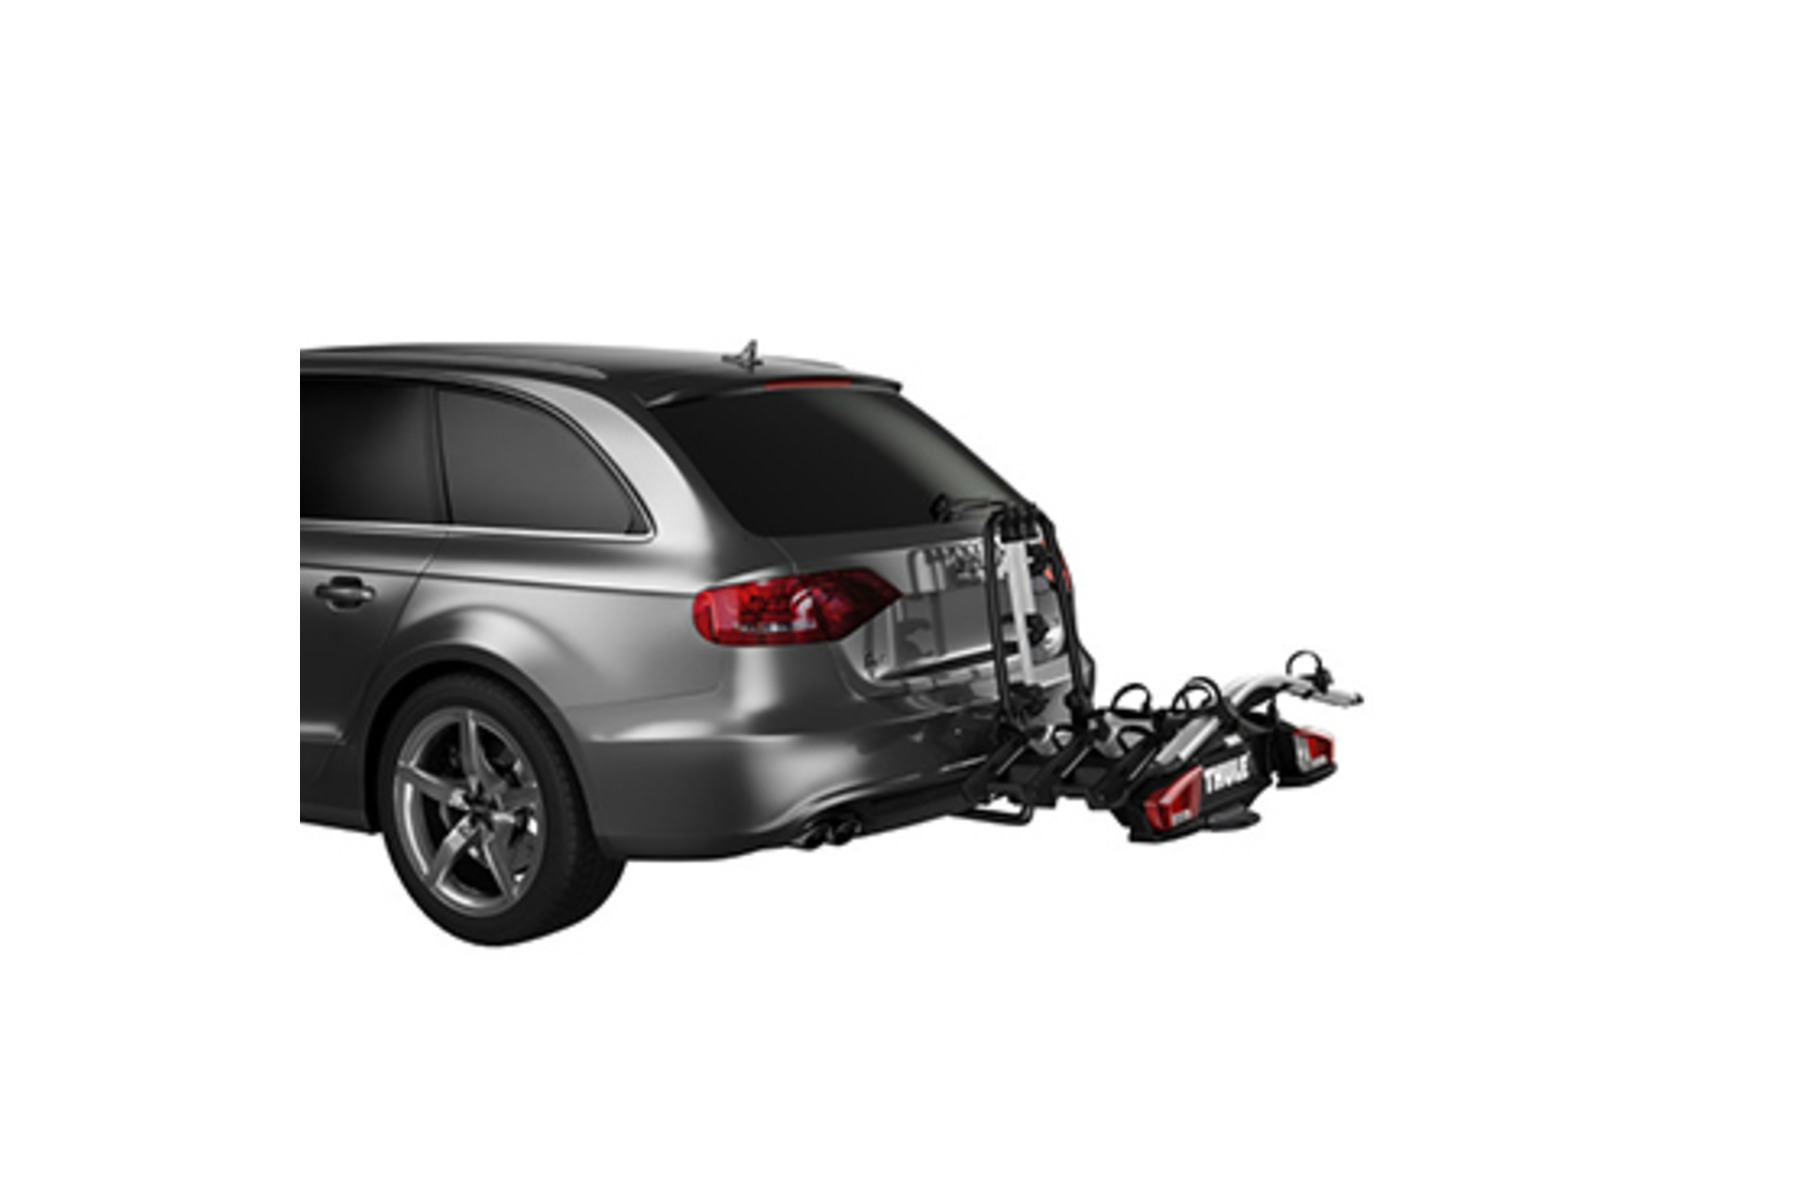 buy thule 926 1 extension for velocompact 926 tow bar rack 2016 rh rosebikes co uk Bass Clef Staff Bike Carriers Hitch Mount